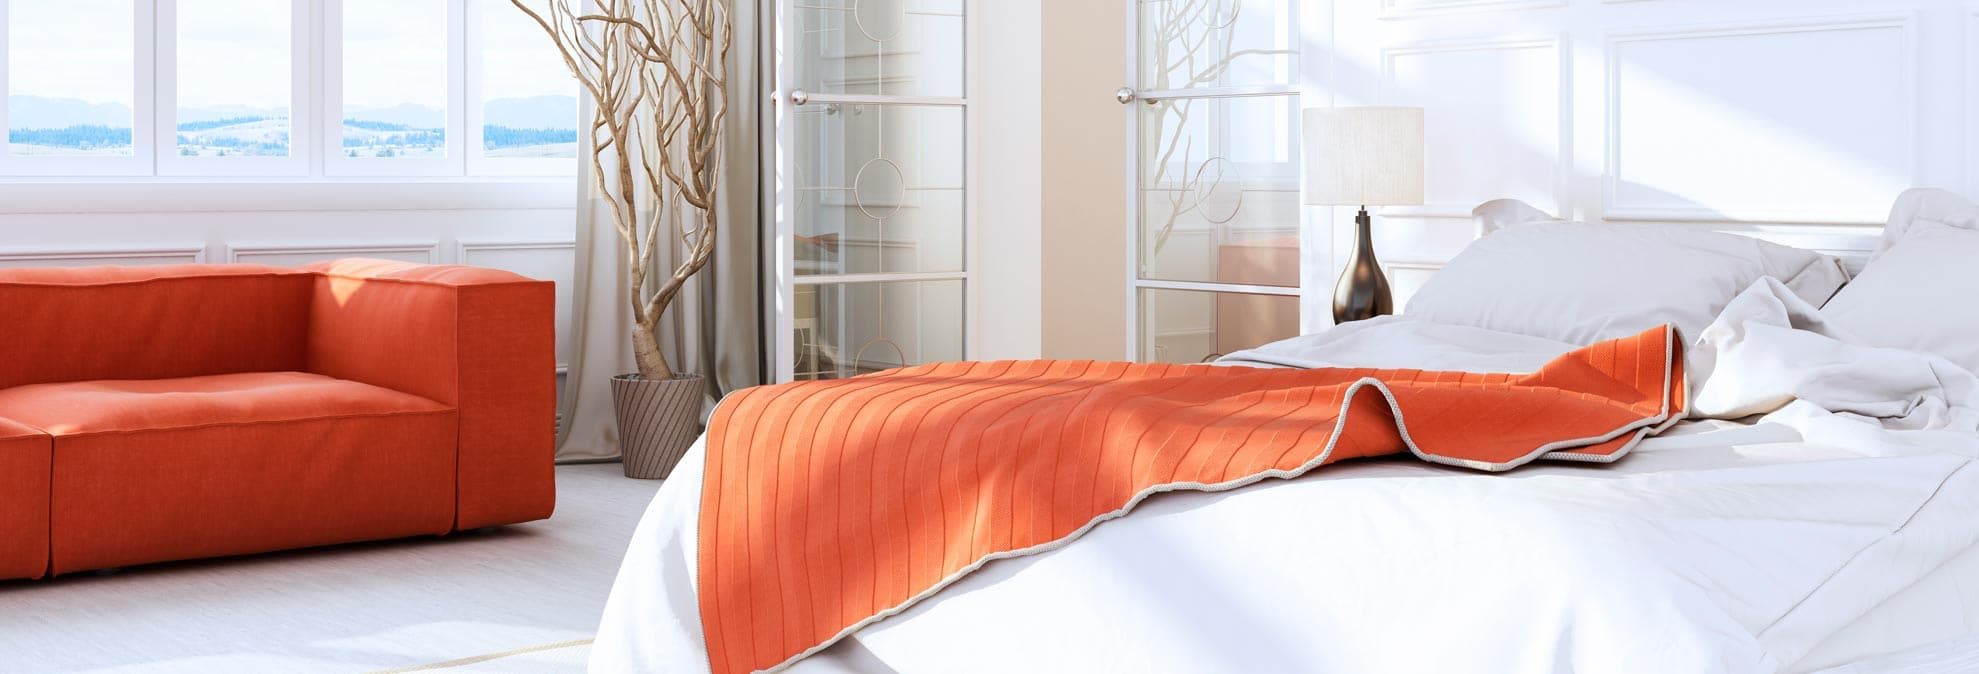 Best Mattress For The Money Consumer Reports Best Mattresses in Consumer Reports' Tests - Consumer Reports